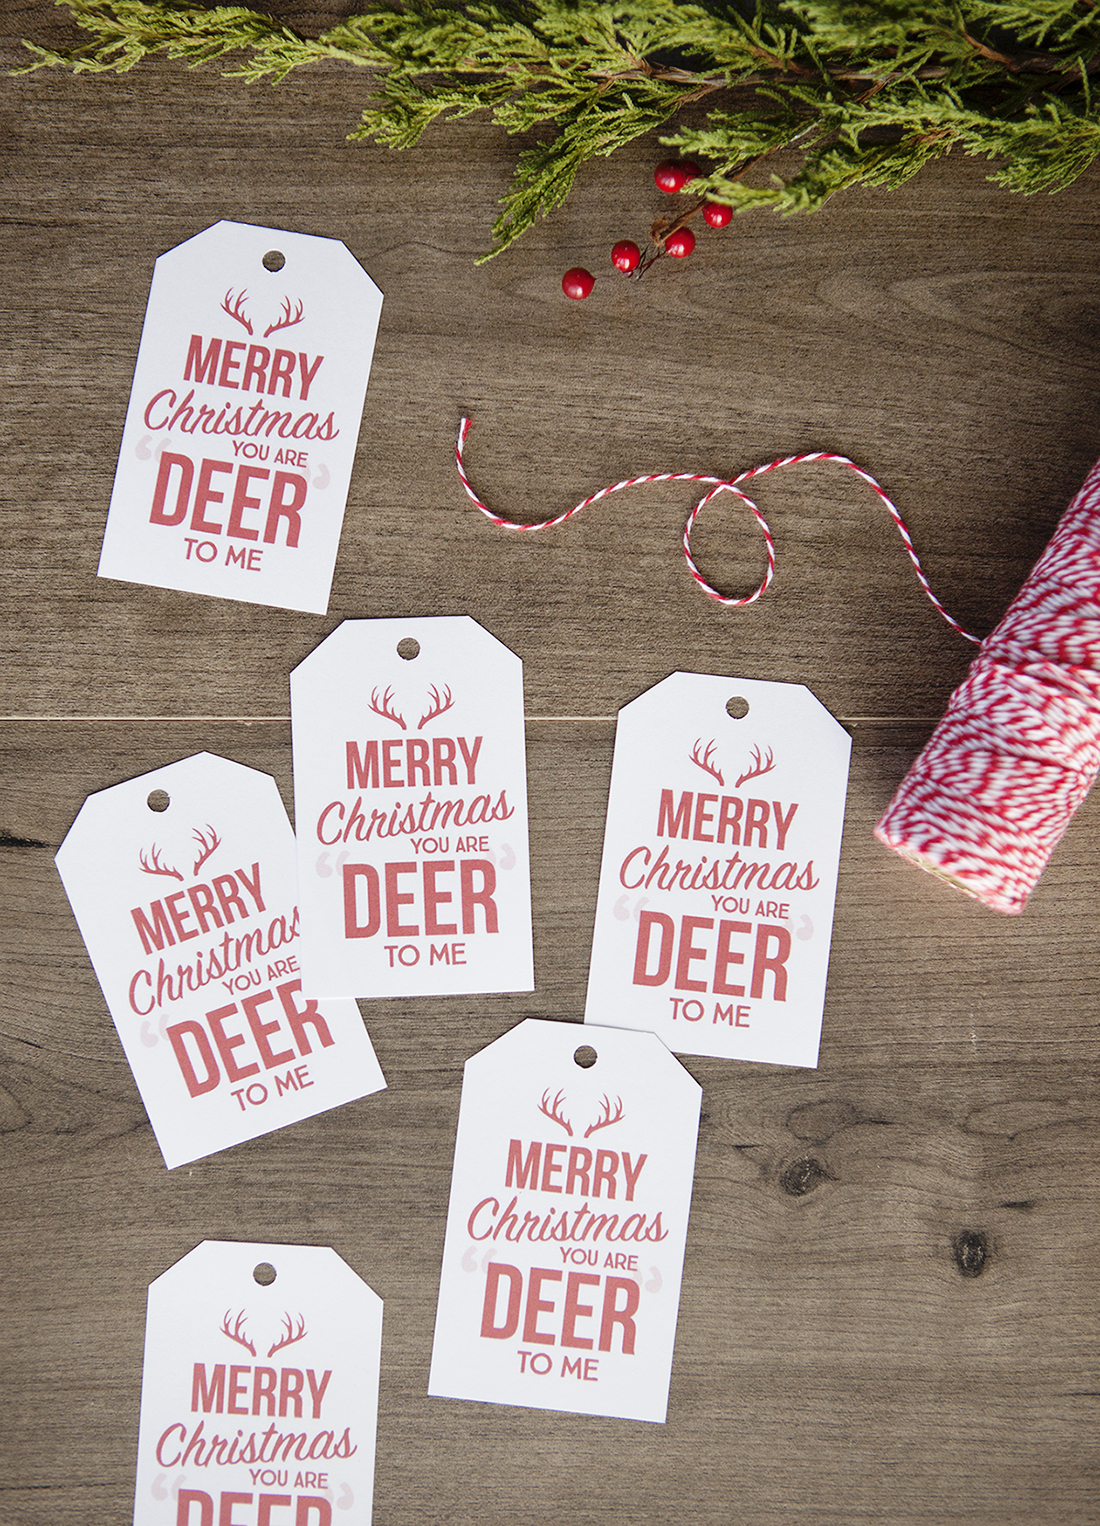 You are DEER to me Christmas Gift Tags